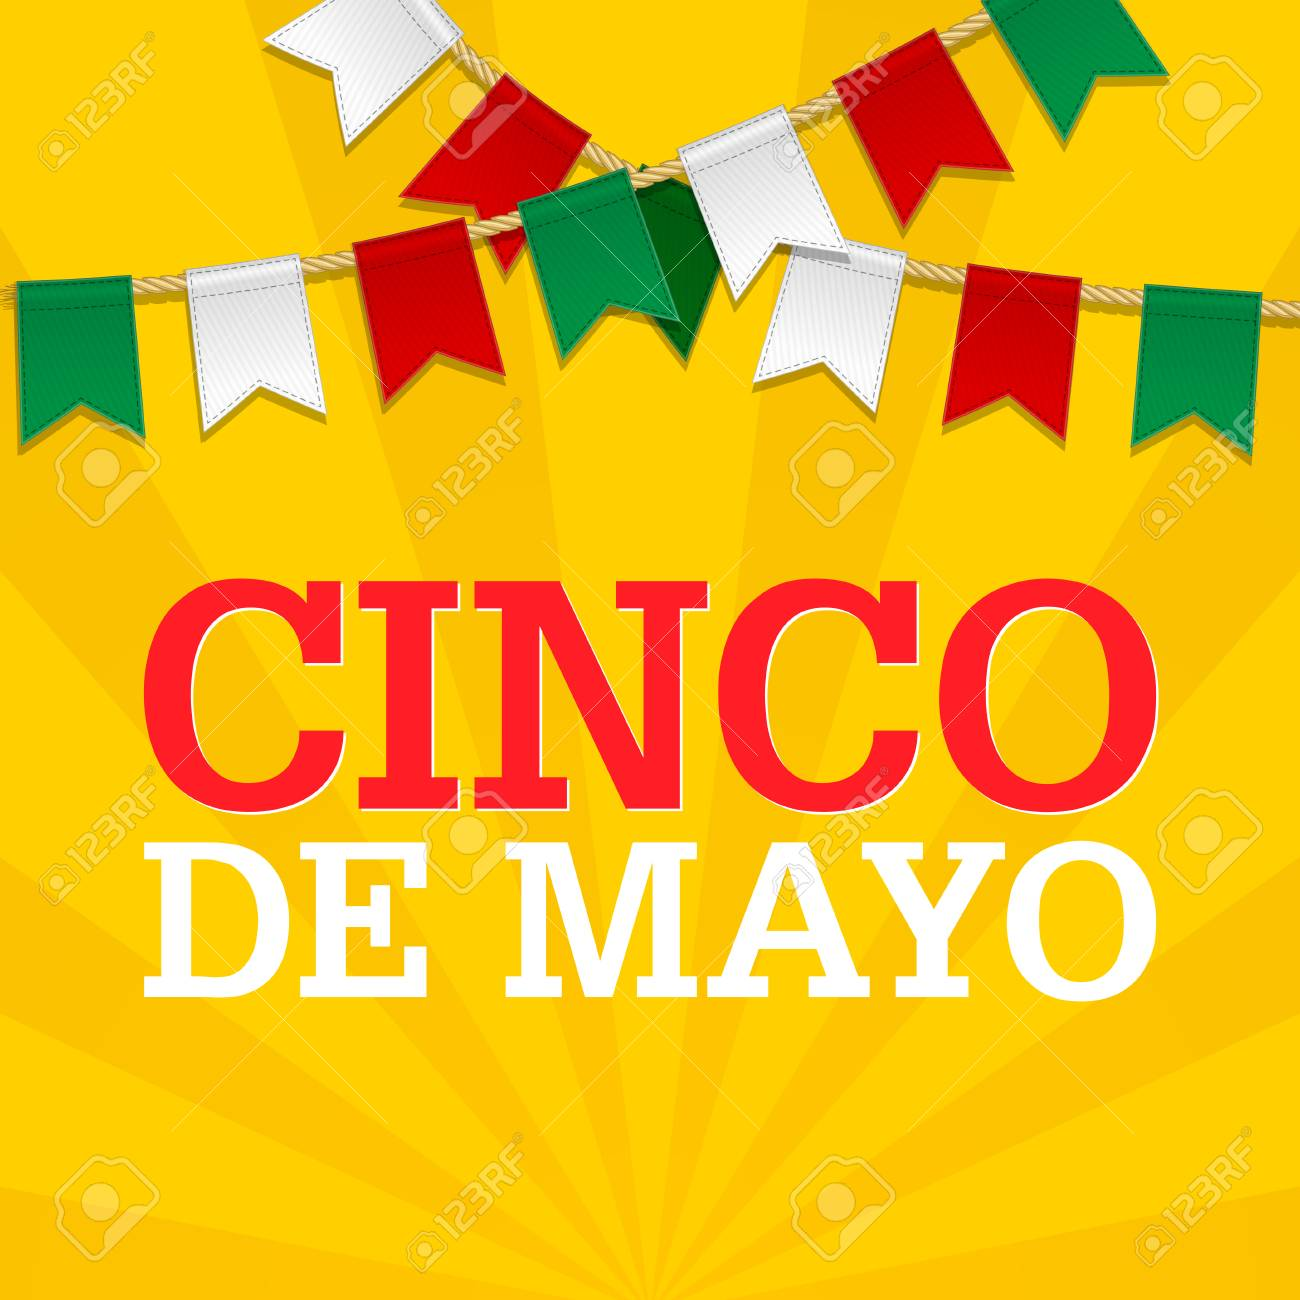 Cinco De Mayo Background For A Celebration Held On May 5 Mexican Holiday Template In